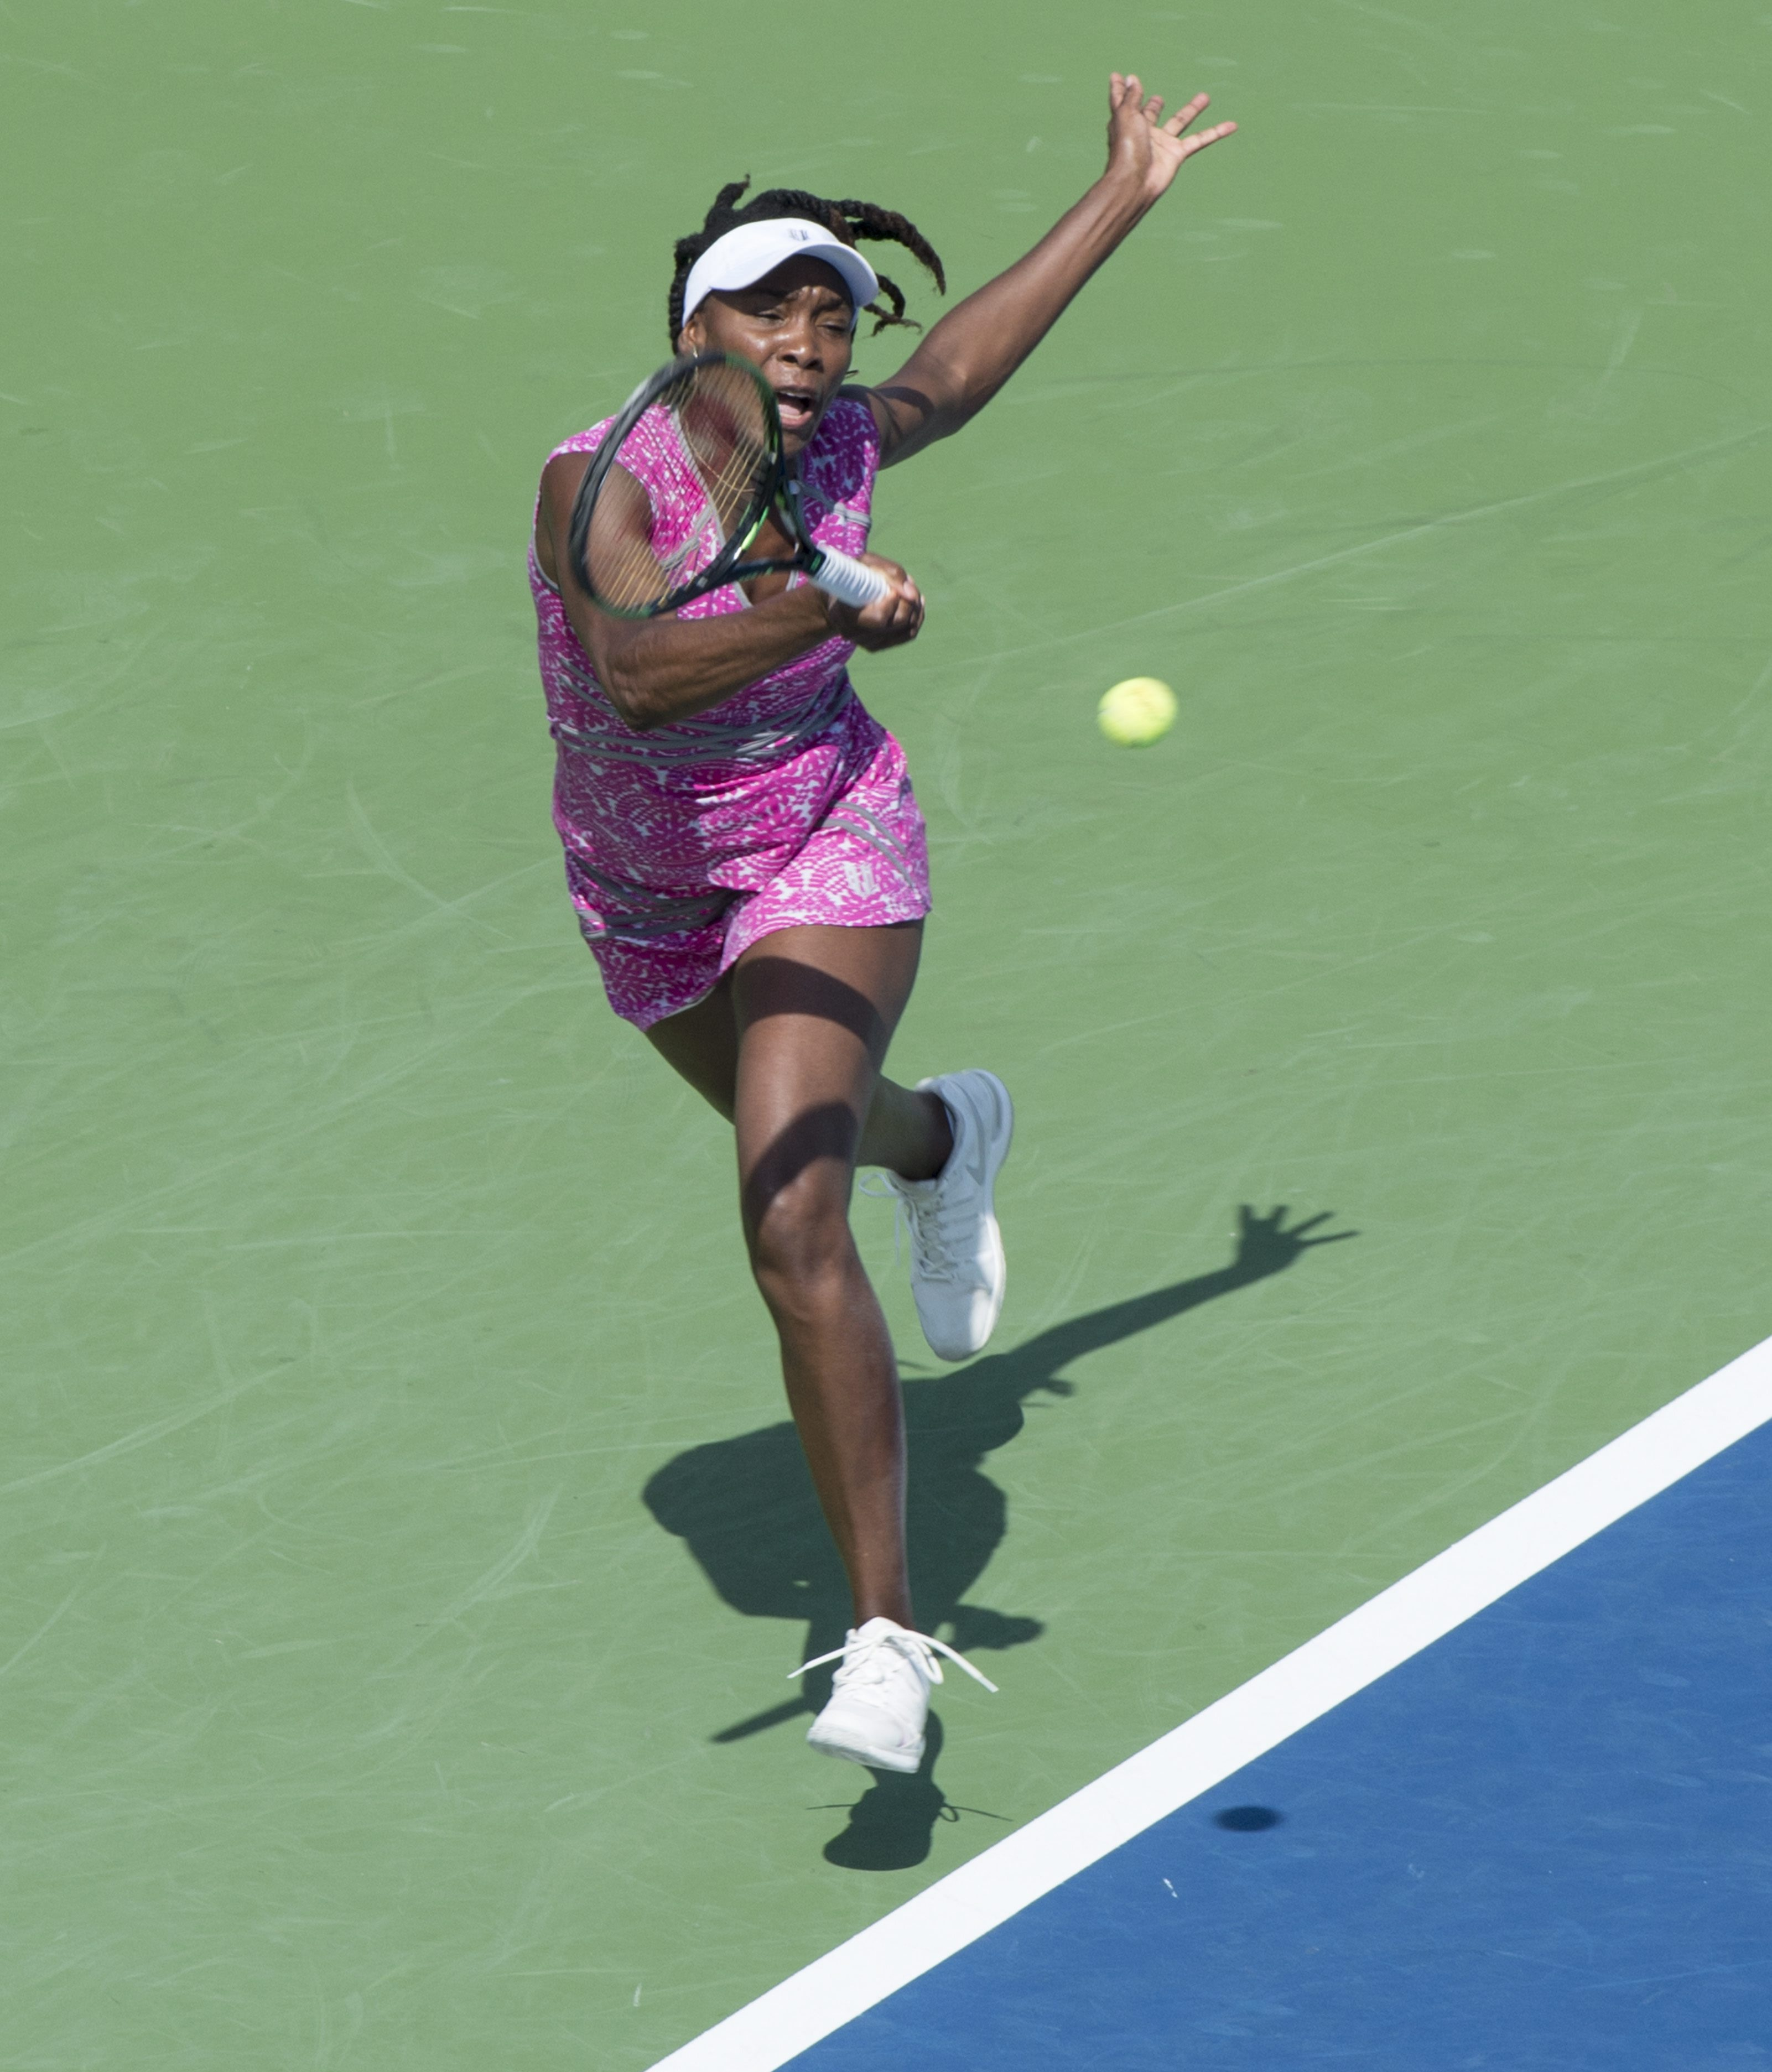 Venus Williams, of the United States, returns to Barbora Strycova, of the Czech Republic, during a second round match at the Rogers Cup tennis tournament Wednesday July 27, 2016 in Montreal. (Paul Chiasson/The Canadian Press via AP)